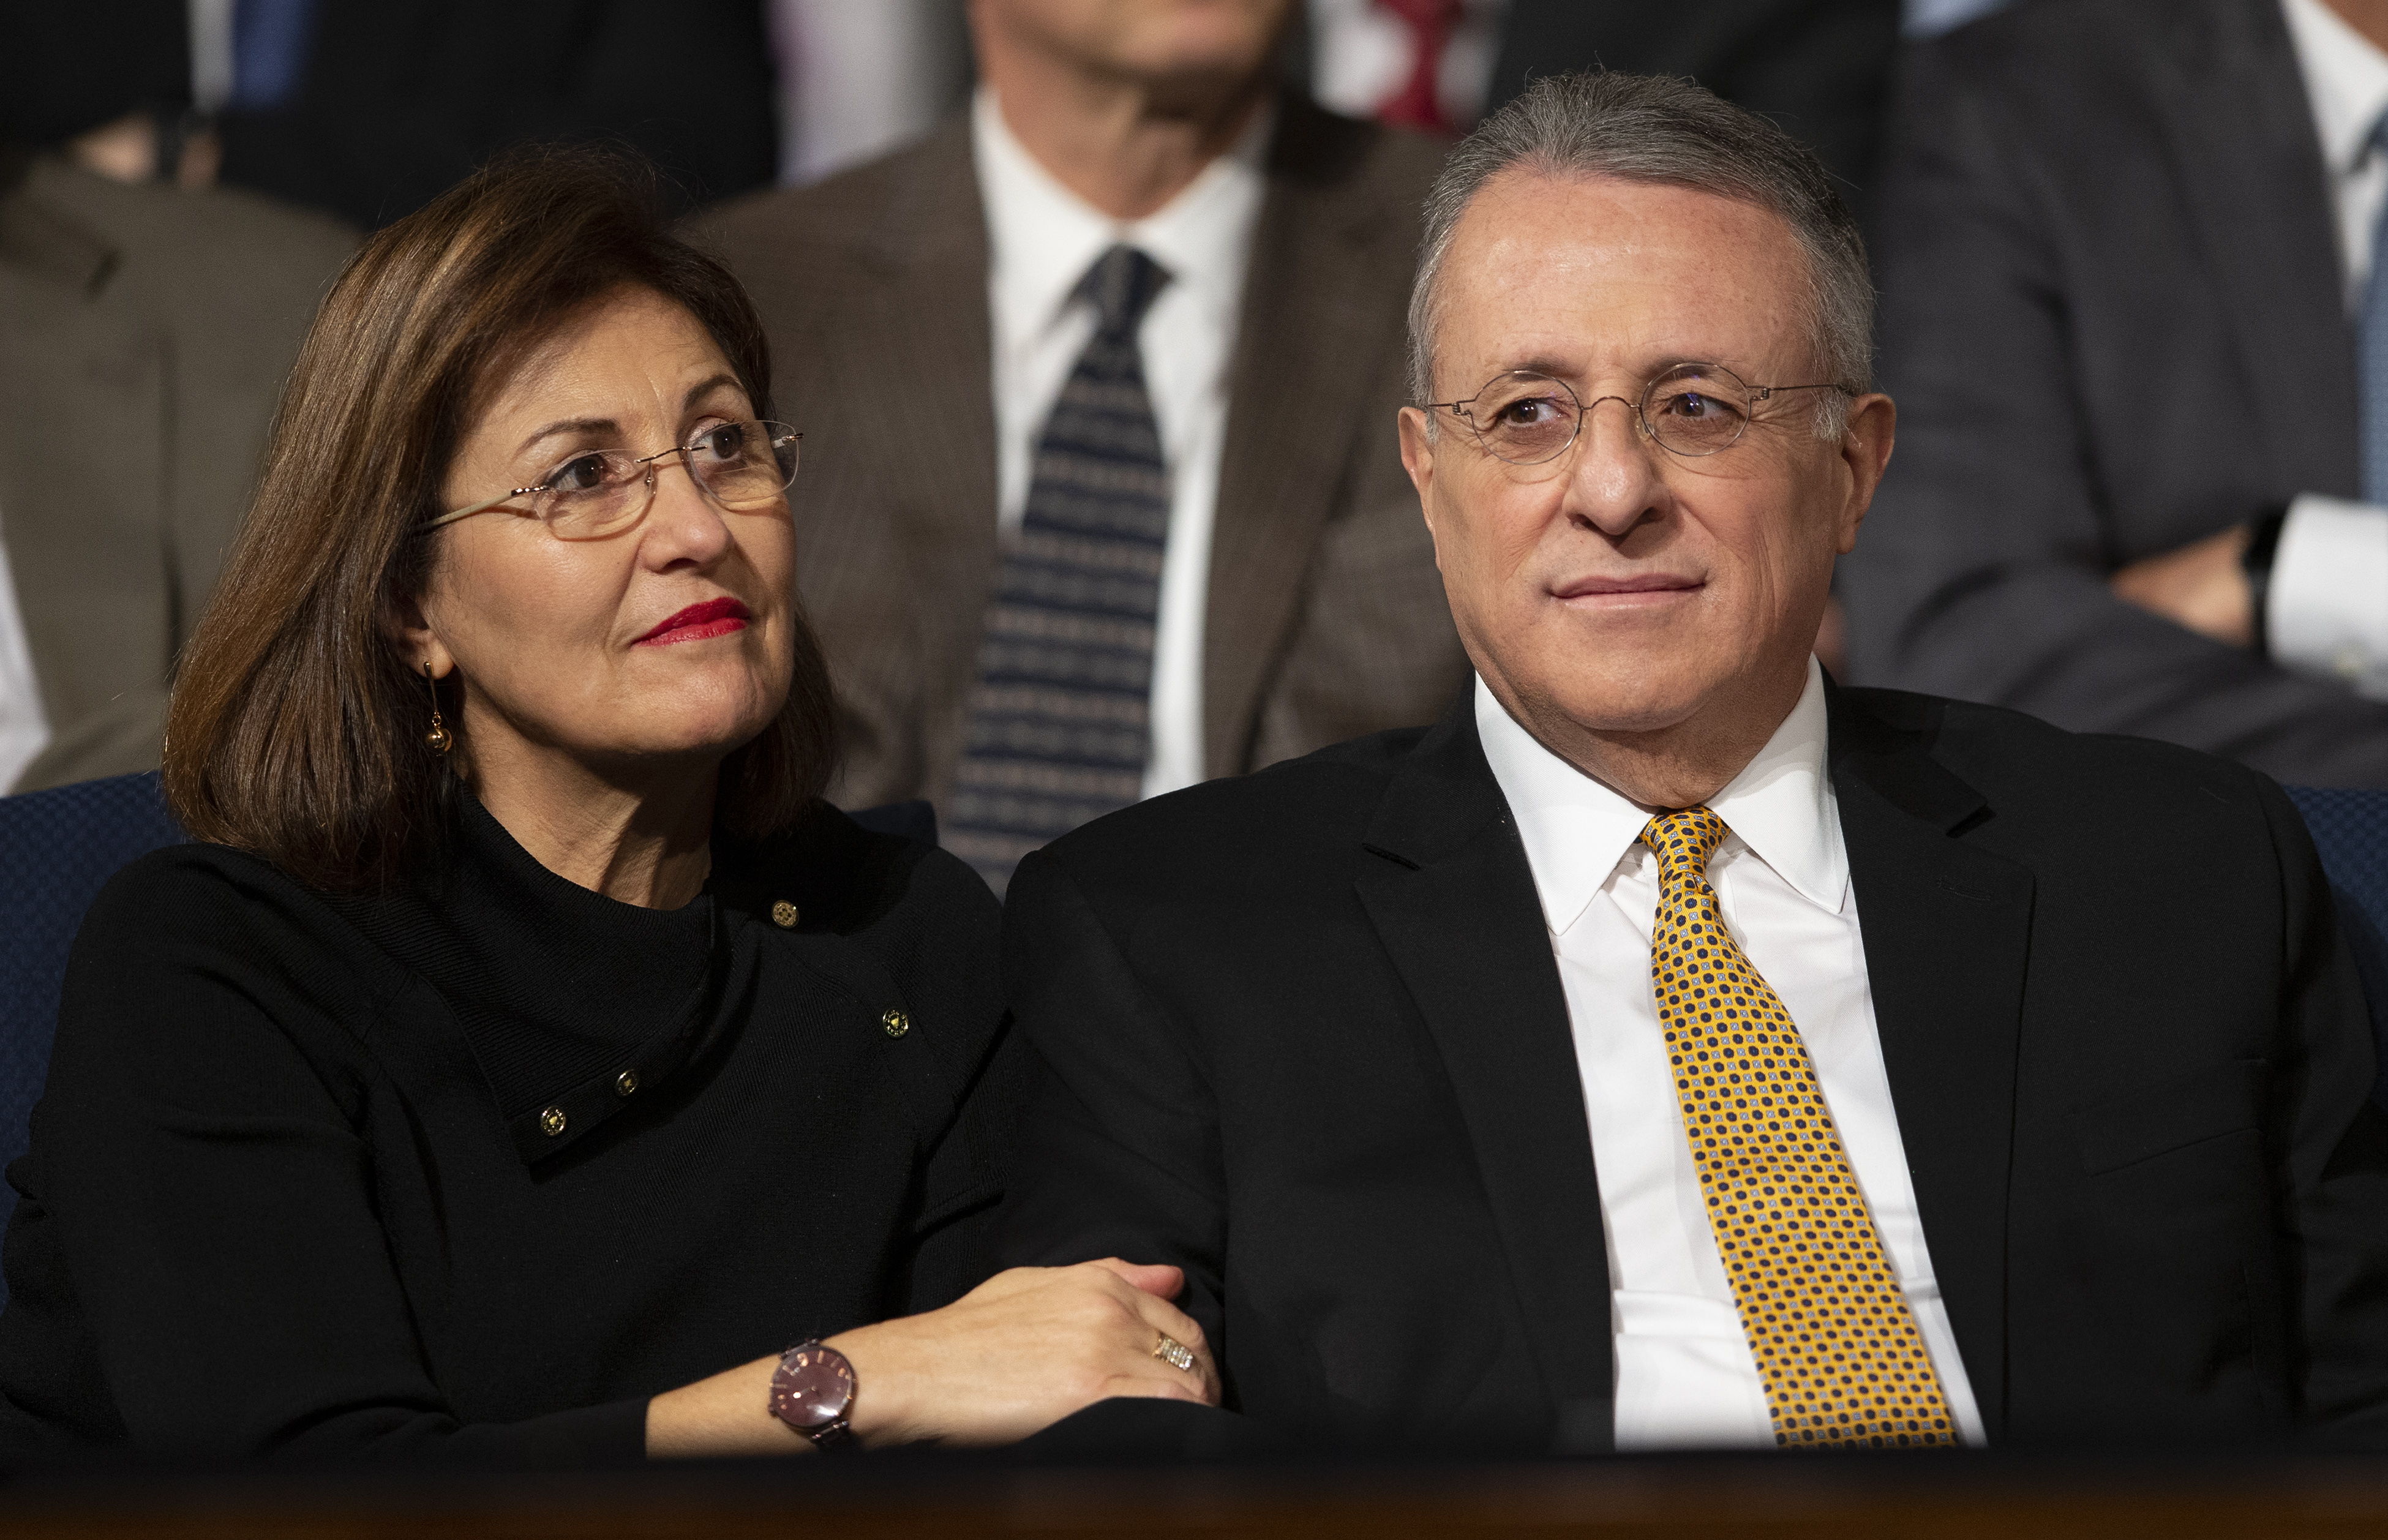 Elder Ulisses Soares of the Quorum of the Twelve Apostles of The Church of Jesus Christ of Latter-day Saints and his wife Sister Rosana Soares take their seats prior to his speaking at a devotional at BYU in Provo on Tuesday, Feb. 5, 2019.